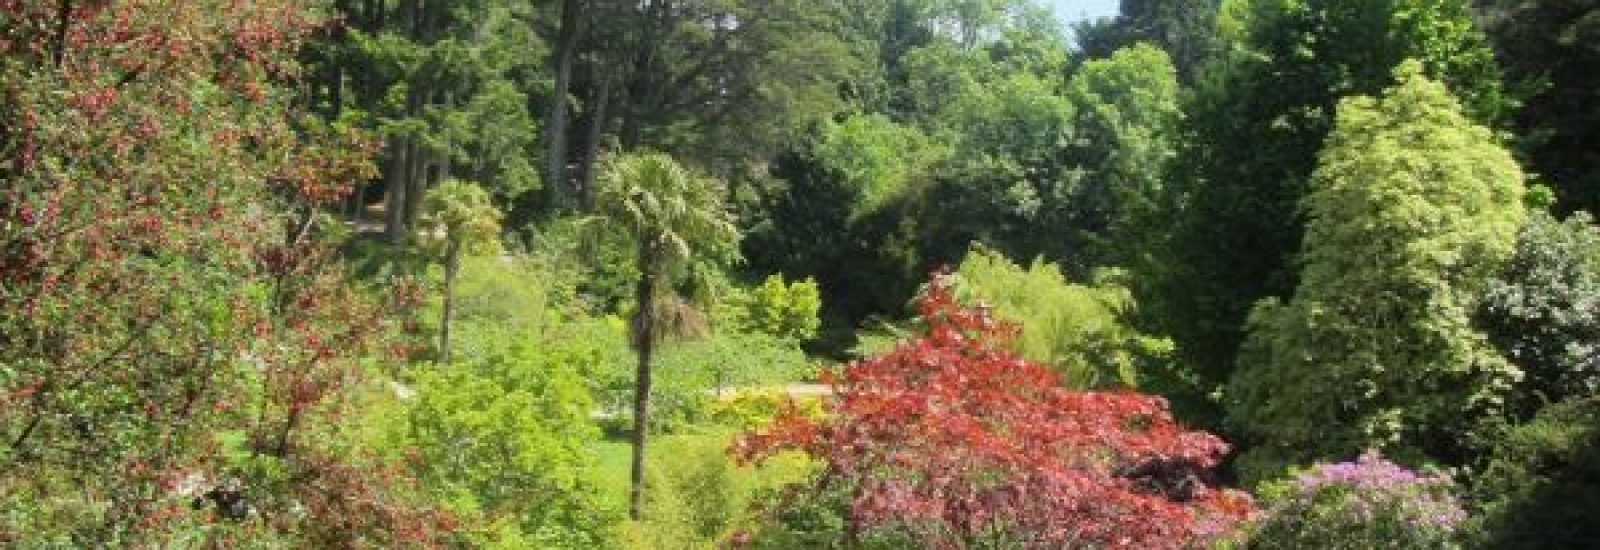 A Trip to the Orient – the Japanese Gardens at Powerscourt